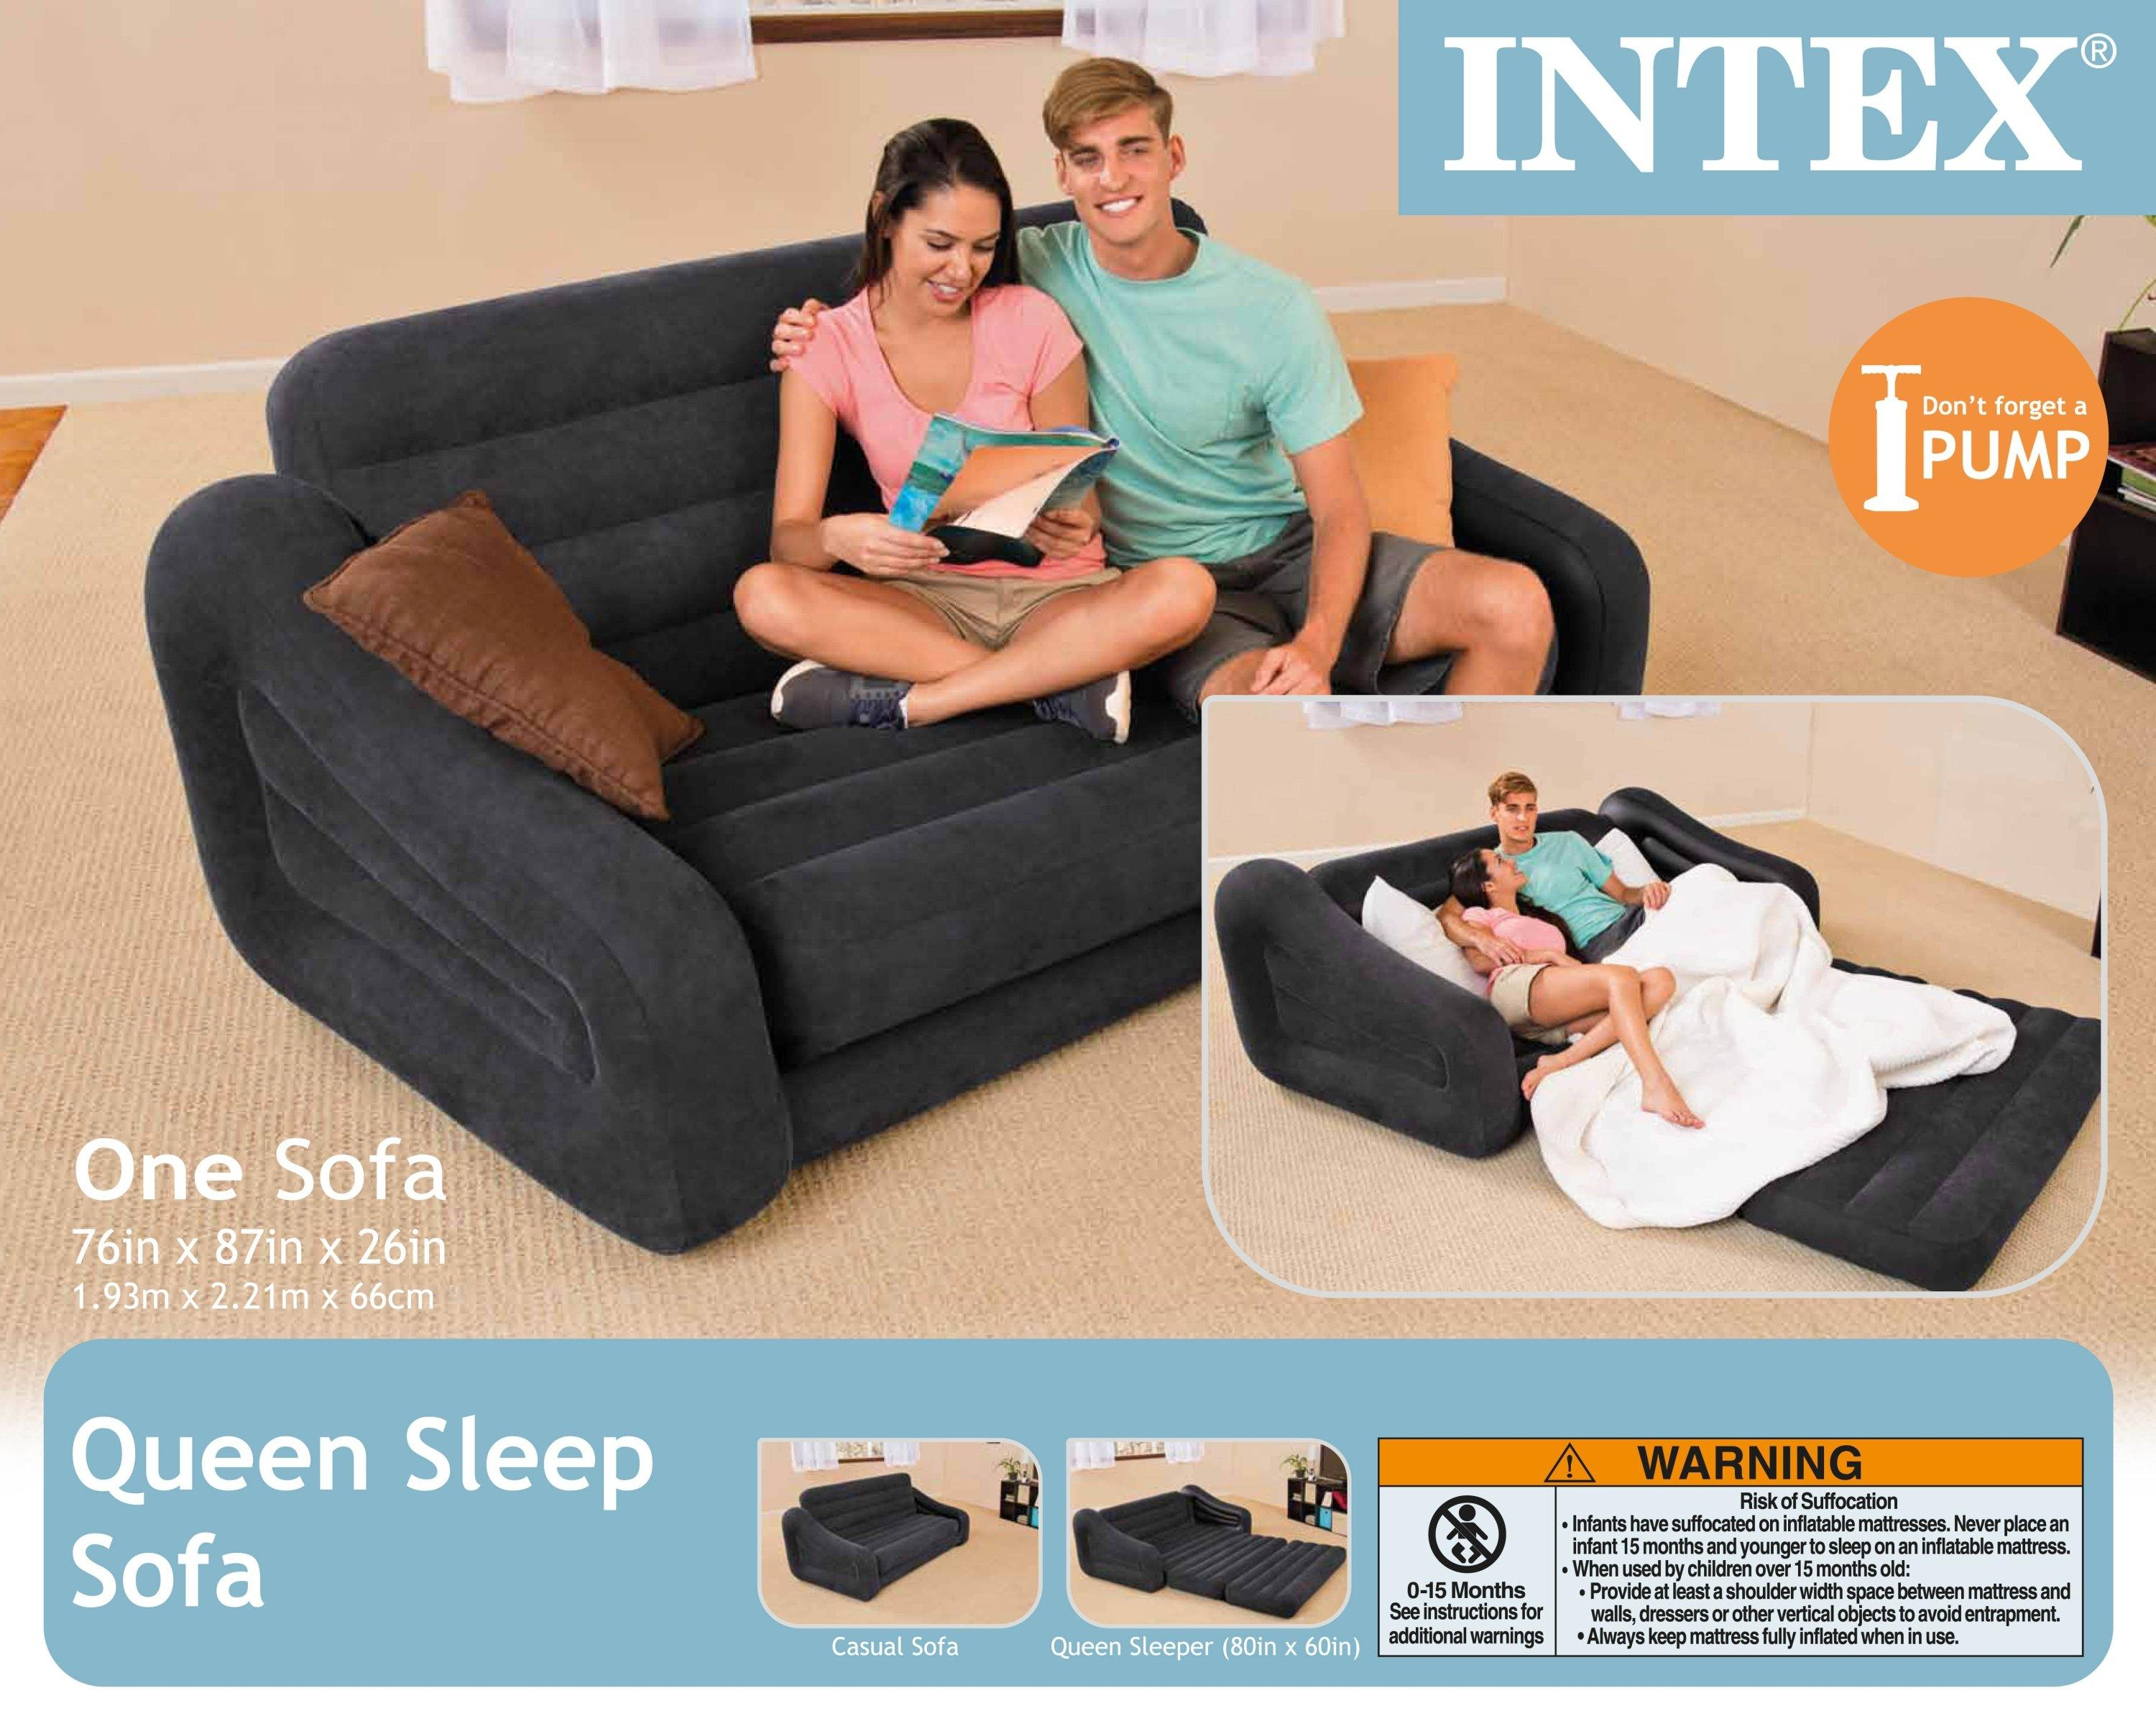 Intex Inflatable Pull Out Sofa & Queen Bed Mattress Sleeper W/ Ac Pertaining To Intex Sleep Sofas (Image 10 of 20)